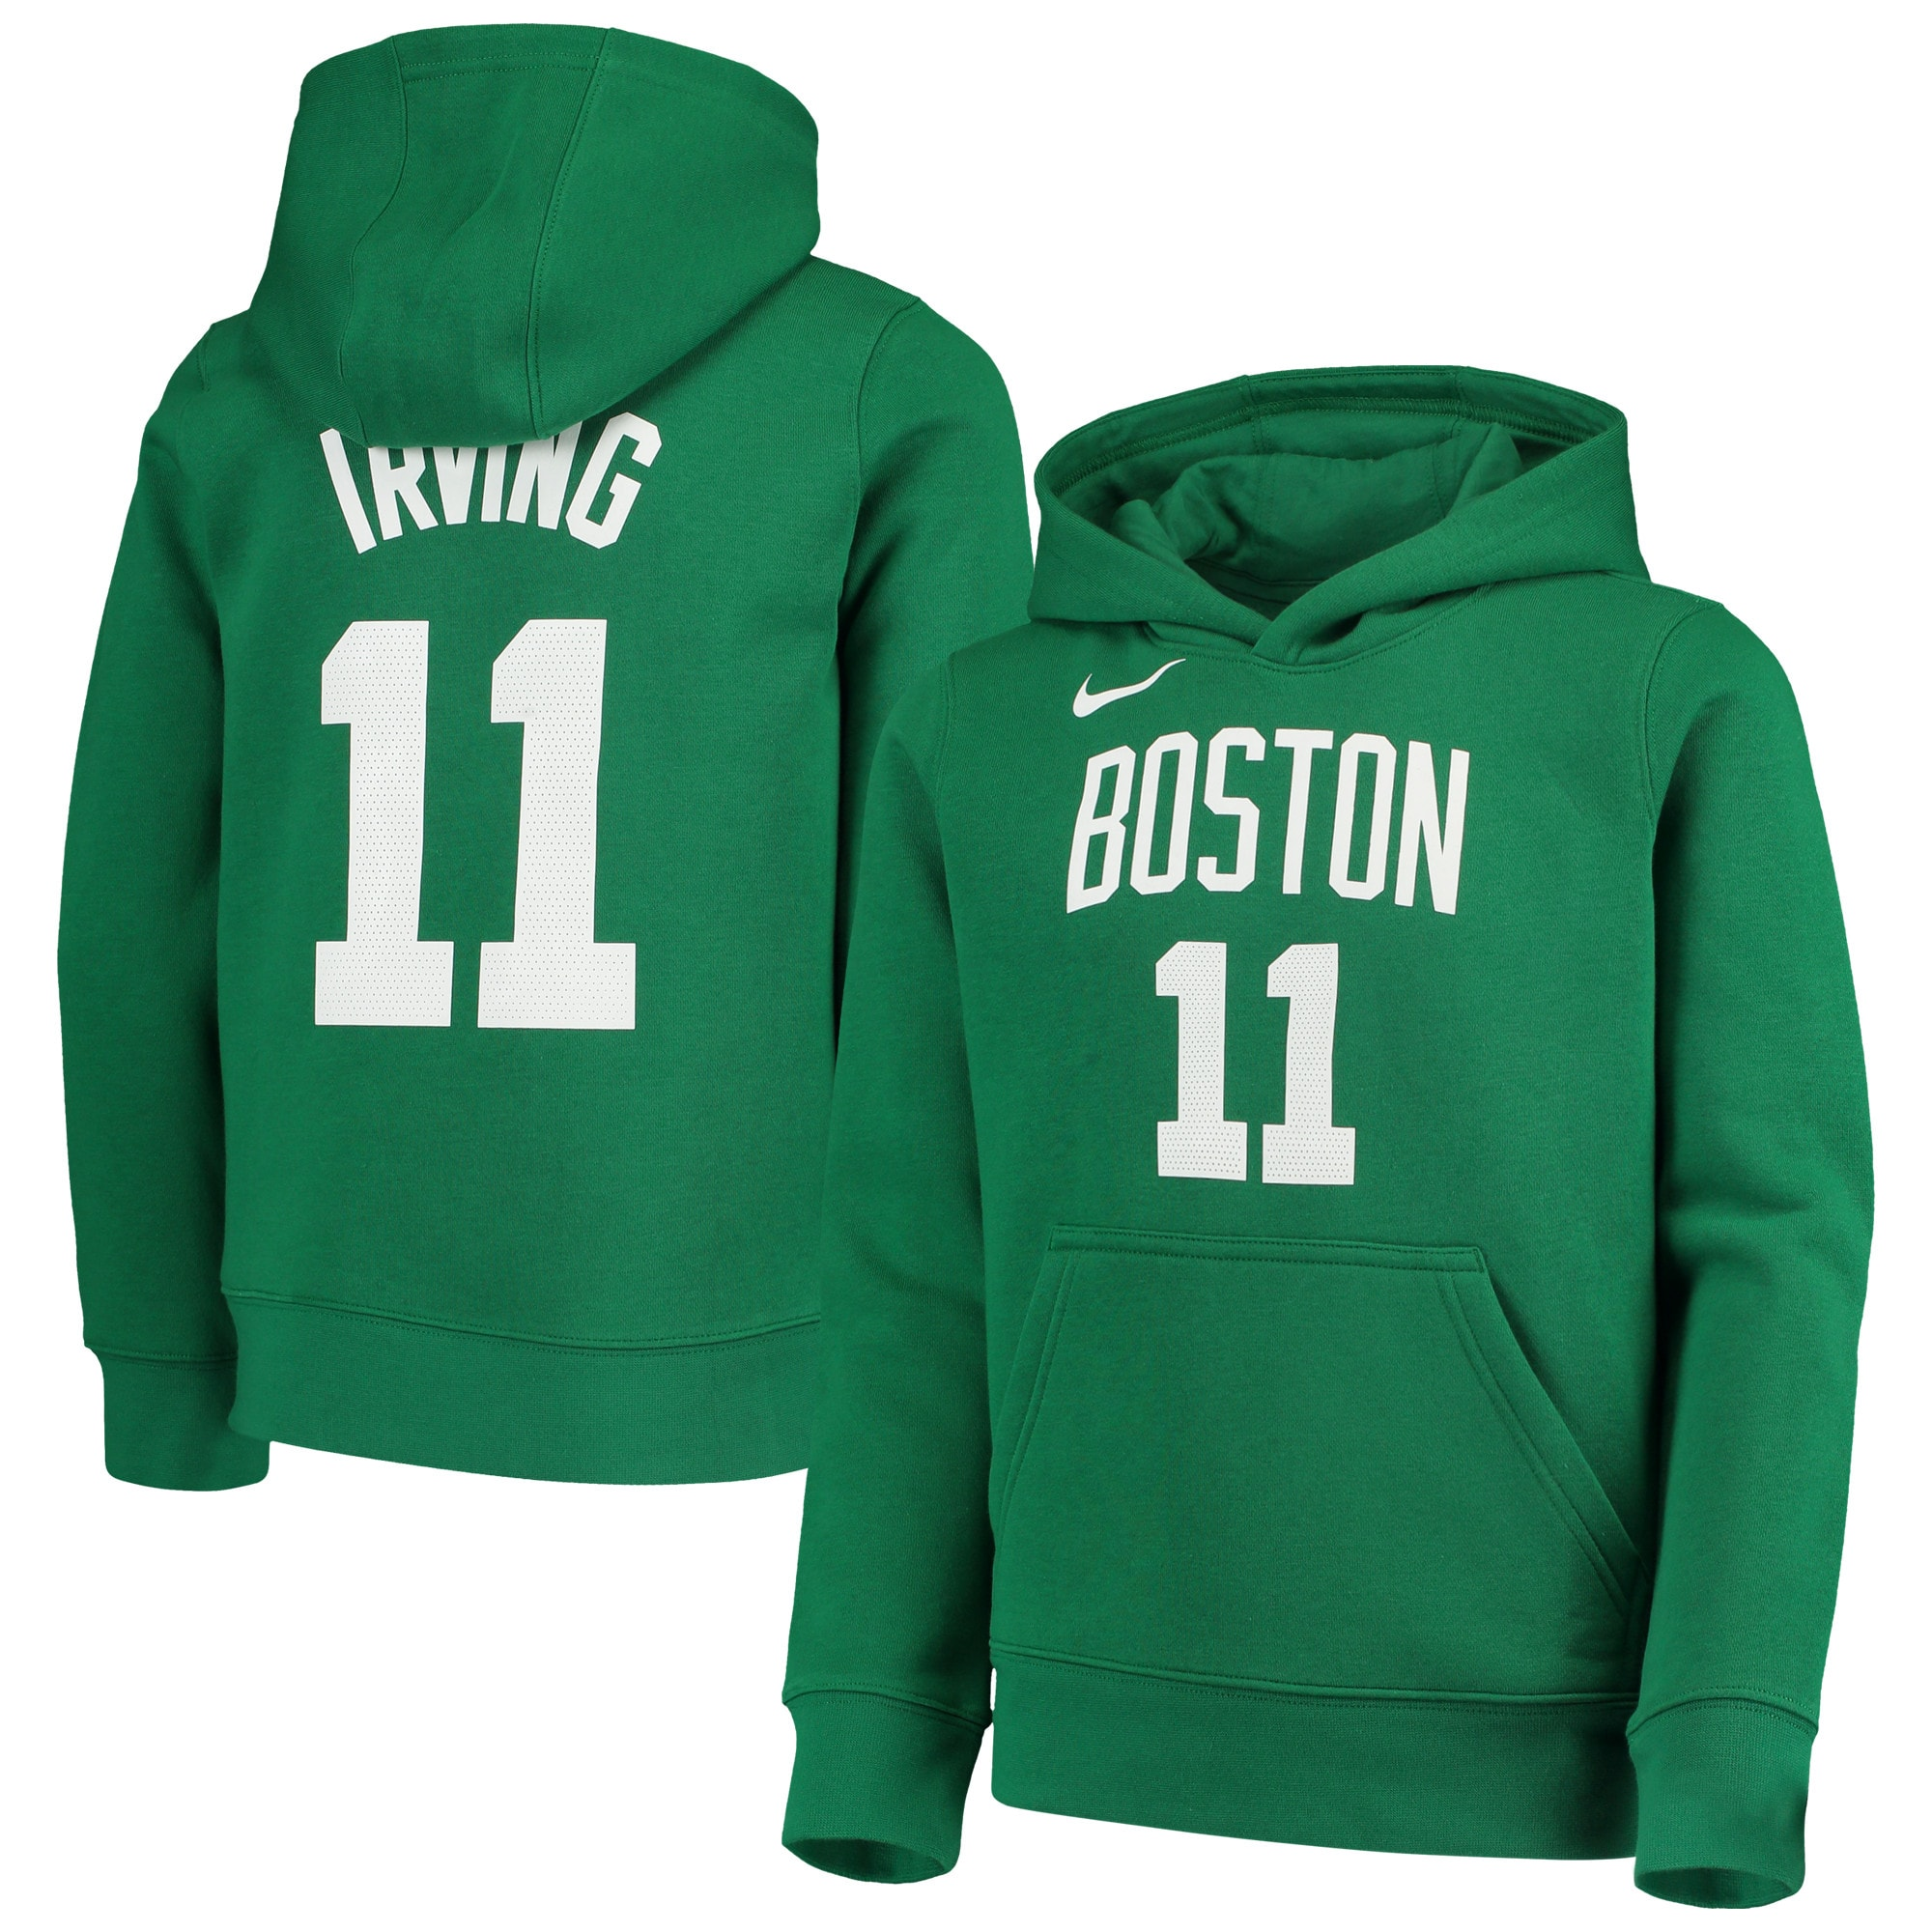 Kyrie Irving Boston Celtics Nike Youth Logo Name & Number Pullover Hoodie - Kelly Green